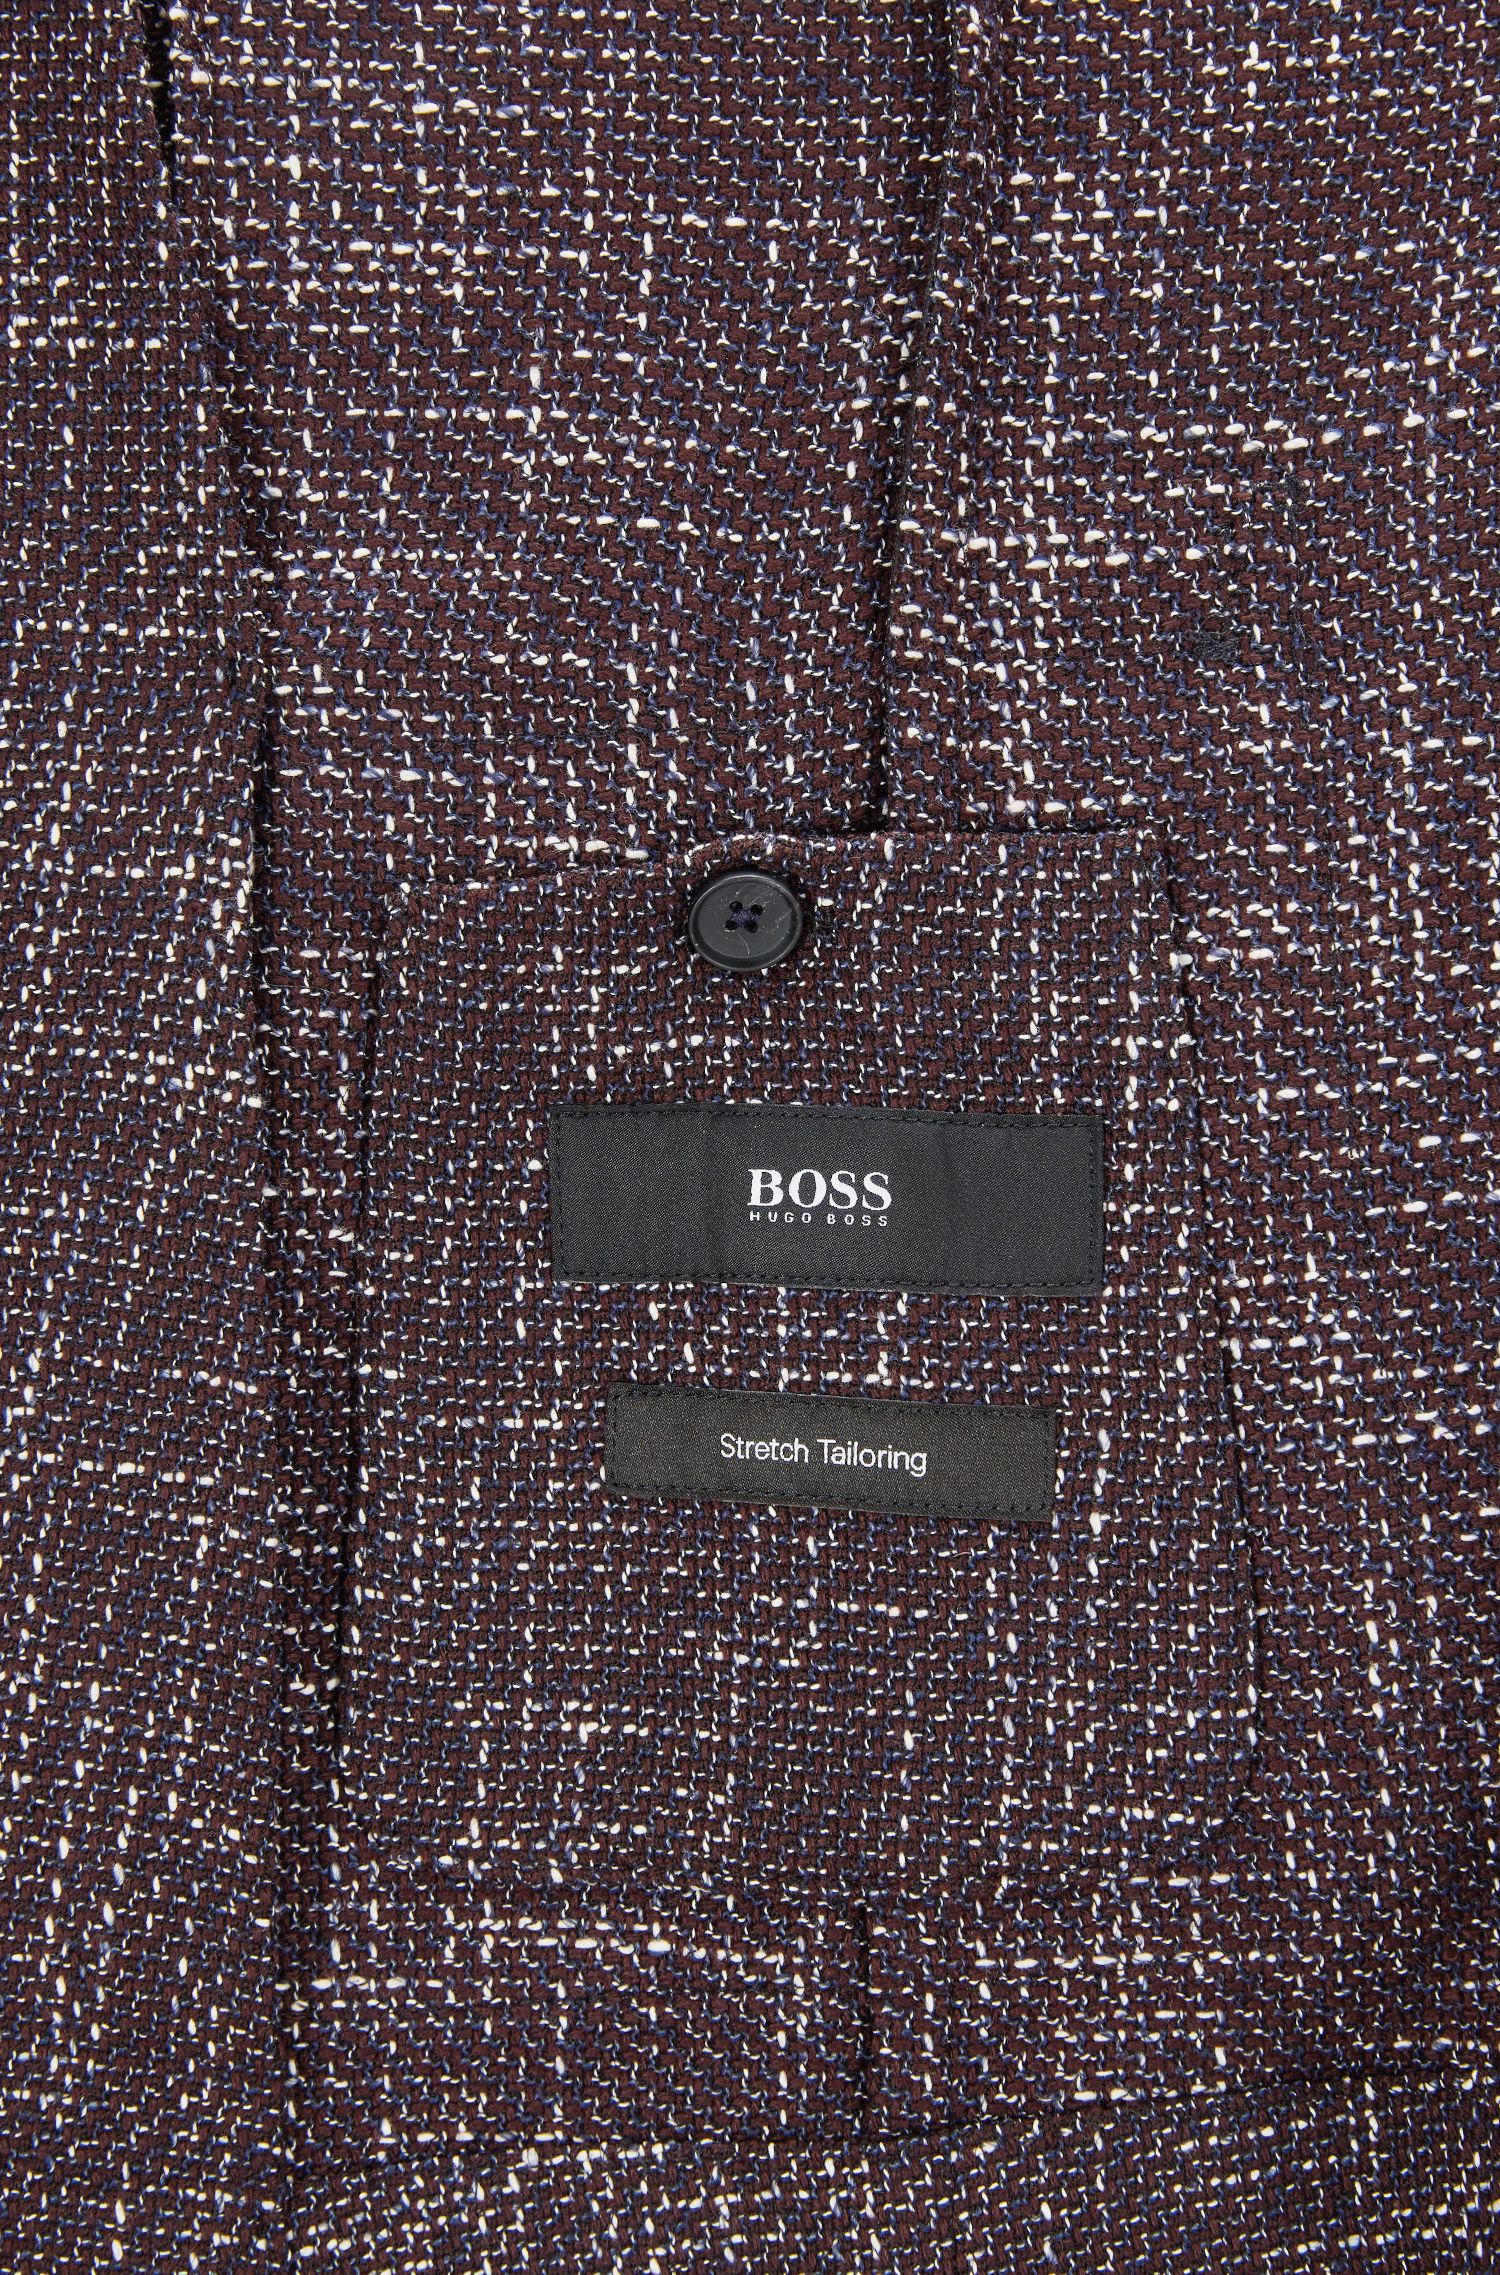 Virgin Wool Blend Tweed Sport Coat, Slim Fit | Nold